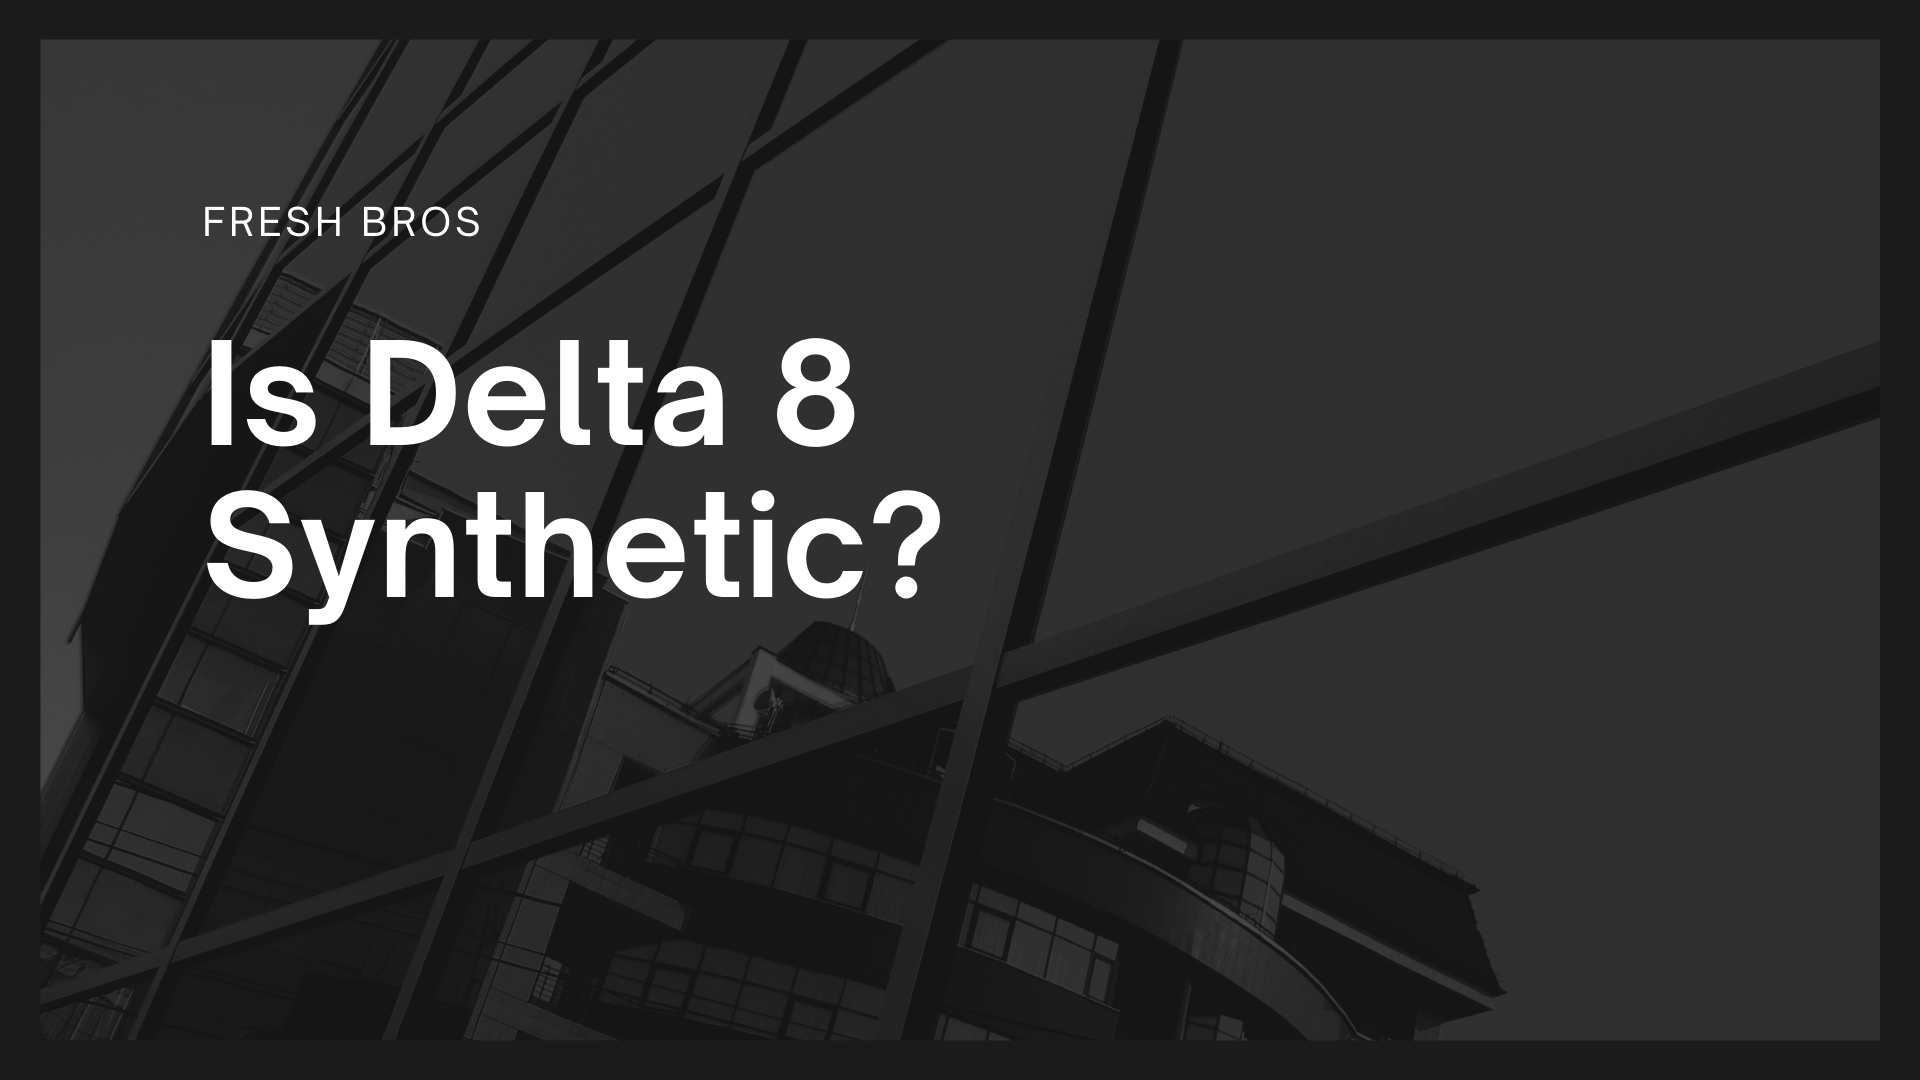 Is Delta 8 Synthetic?